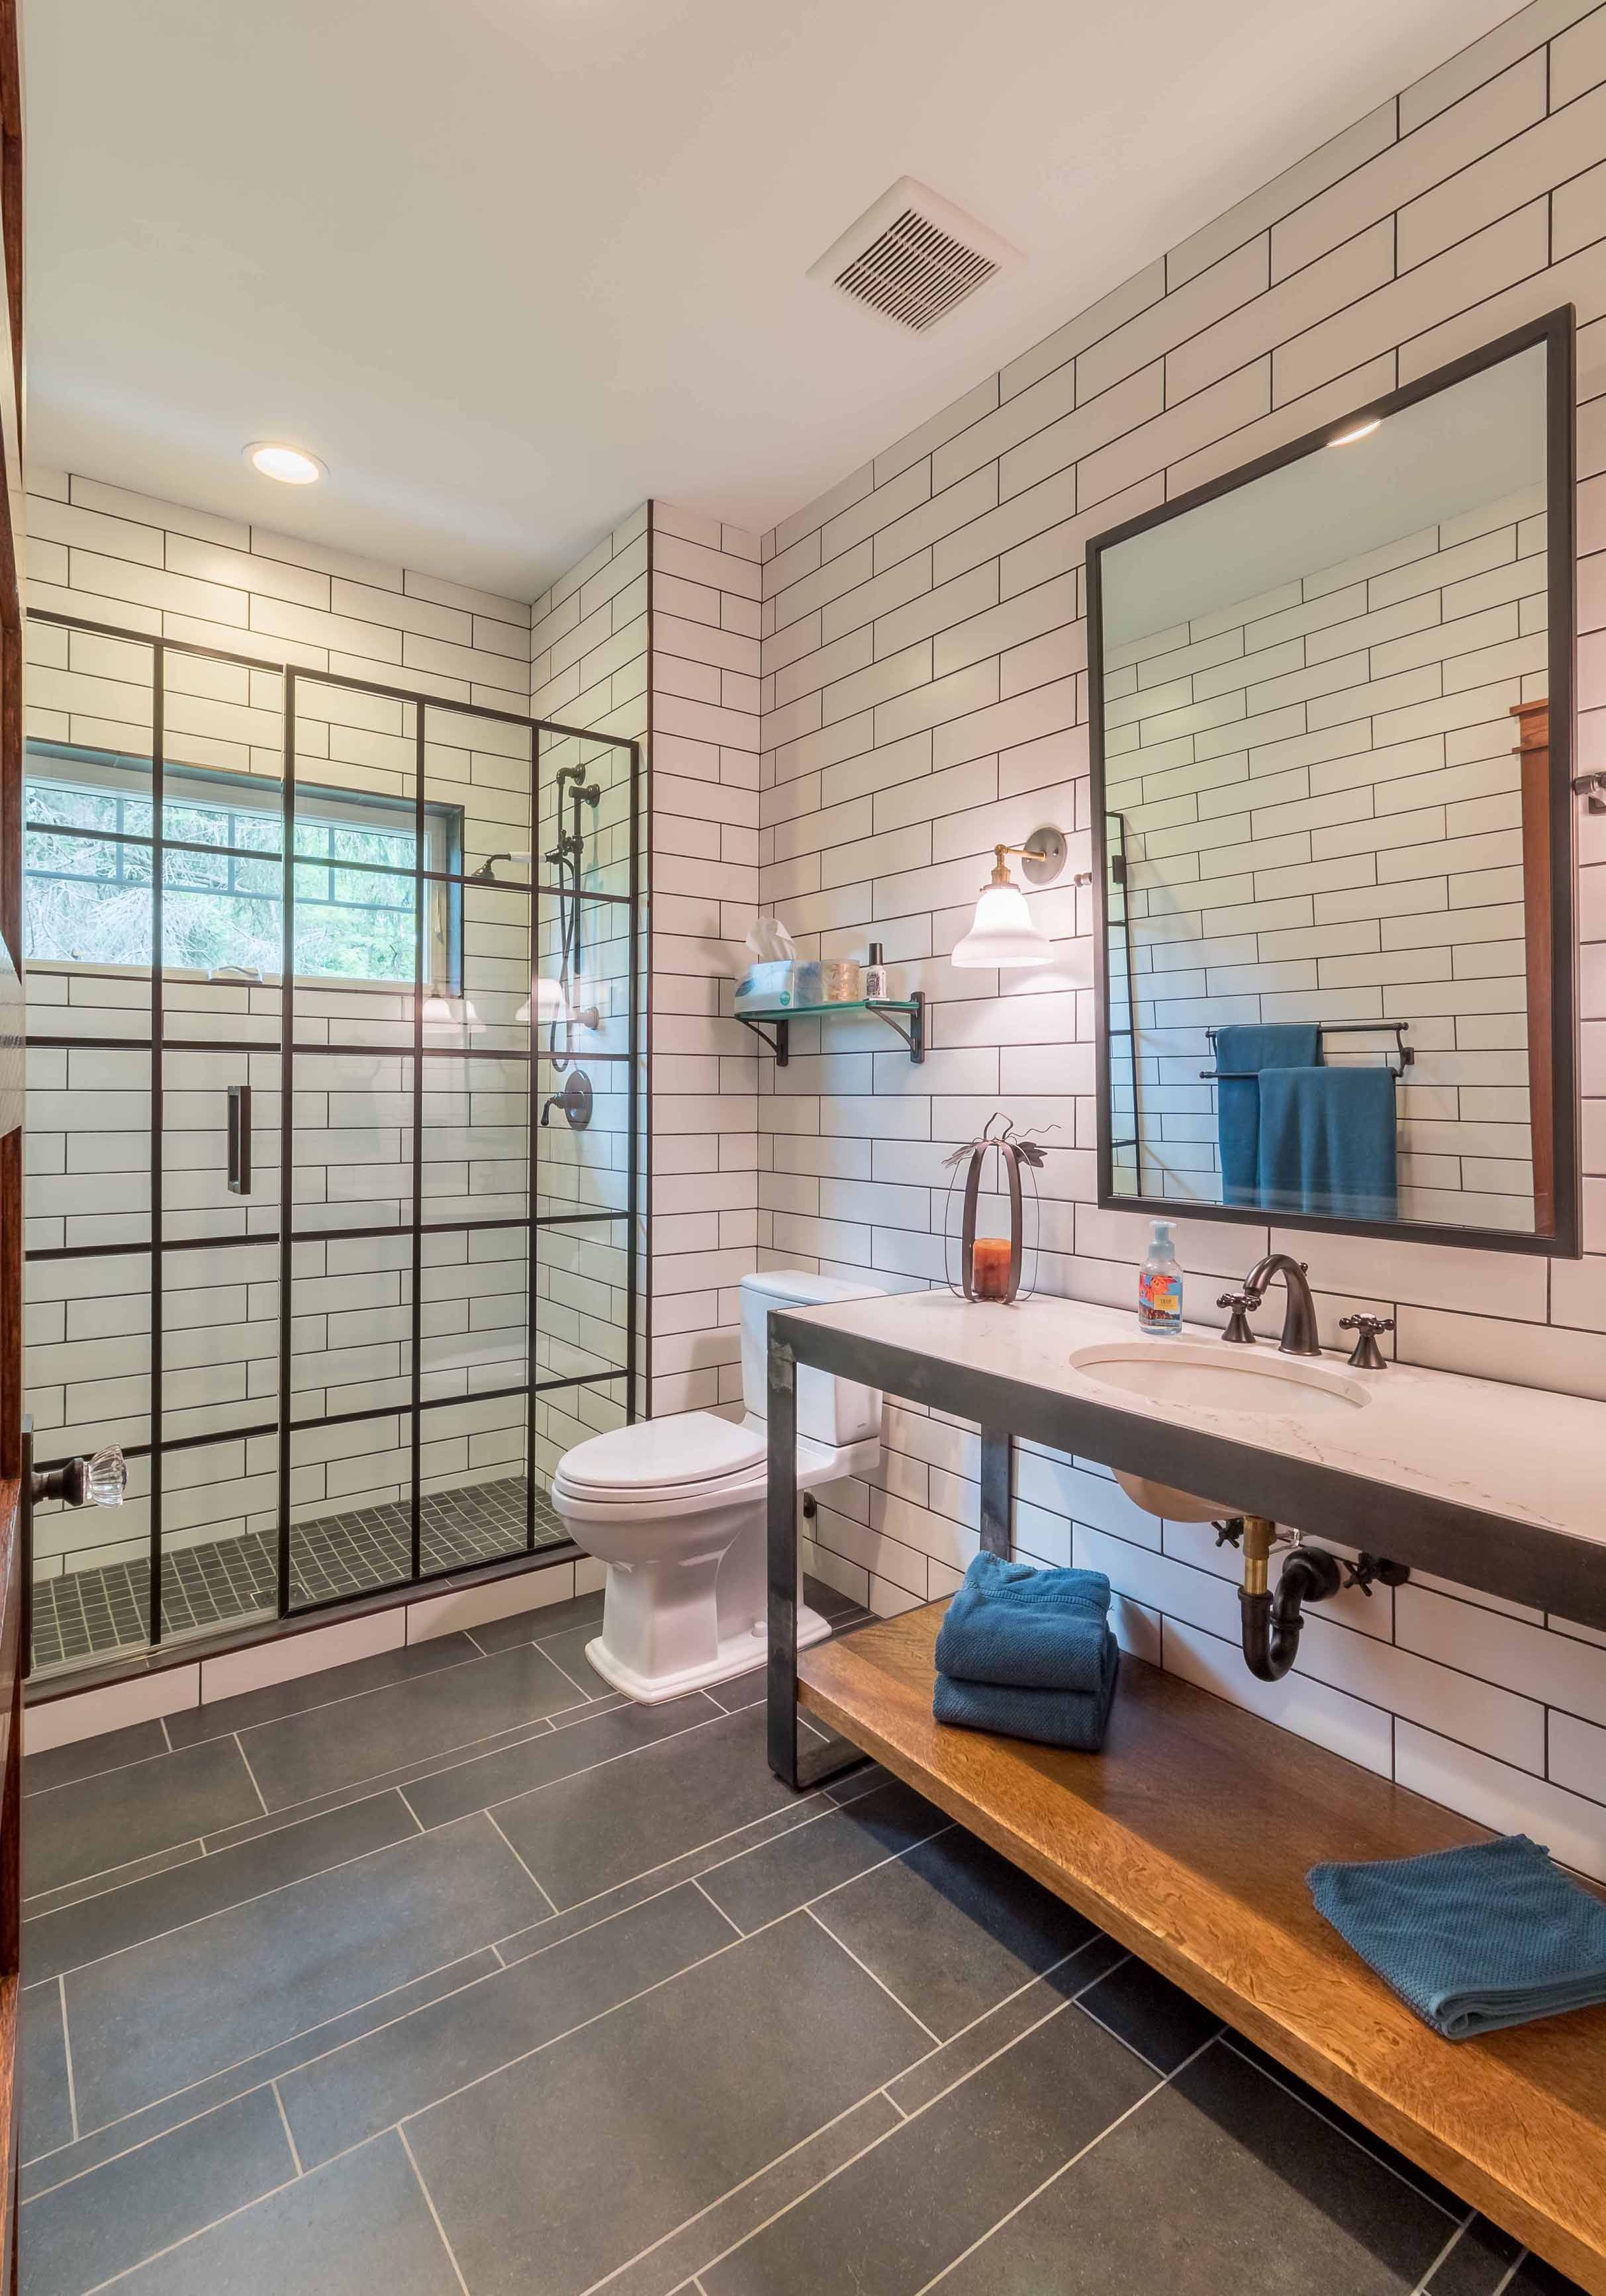 There's no better place to wash off a long week! #1212Architects #EveryDesignTellsAStory #LetUsTellYourStory #DownersGrove #DownersGroveArchitect #LakeGenevaArchitect #LauderdaleLakesArchitect #LakeWhisperer #SubwayTile #SteelShowerDoors #IndustrialChic #ShowerEnvy #CustomLakeHome #LakeLegacyHome #LegacyHome #LegacyAtTheLake #LakeLife #LakeLifeIsTheBestLife #LifeIsBetterAtTheLake #LuxuryLiving #LuxuryHomeDesign #NewHomeConstruction #CustomHome #DreamHome #BestofHouzz2020